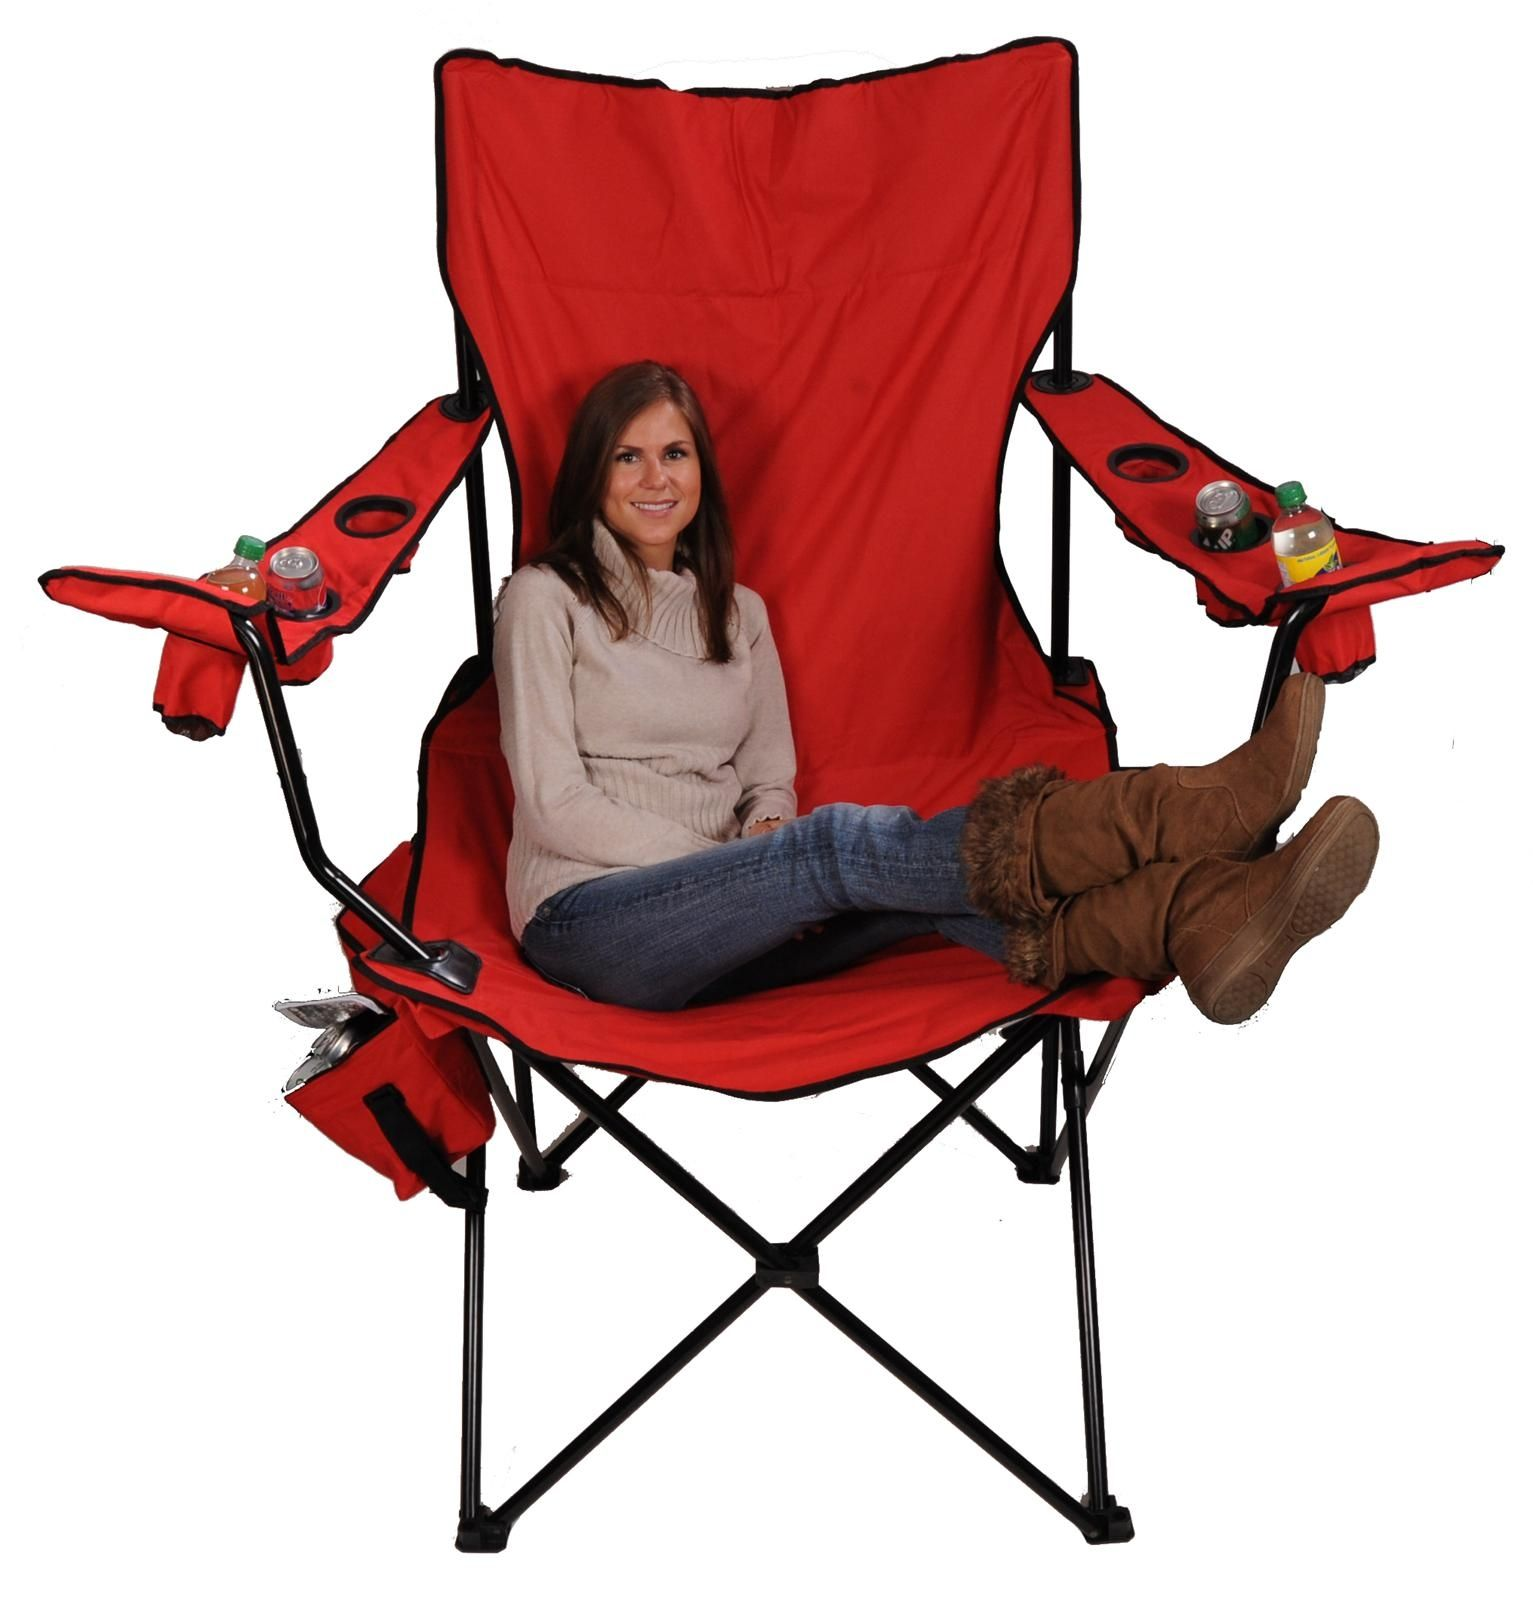 Giant Folding Chair With Cooler